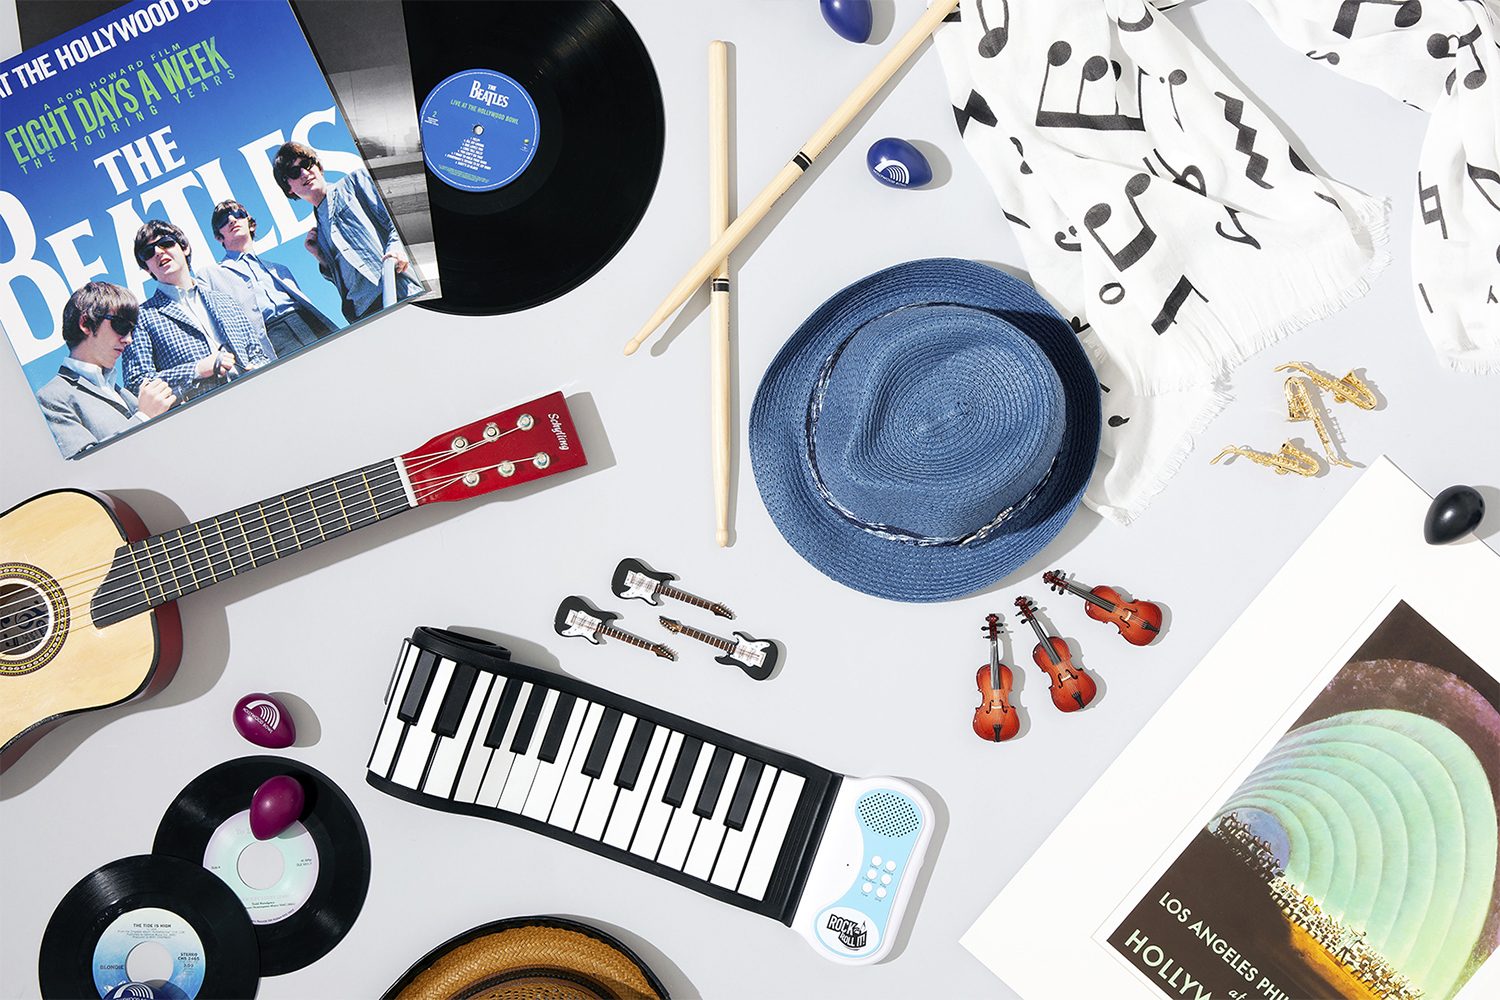 photostyling-products-hollywoodbowl-music-flatlay04.jpg